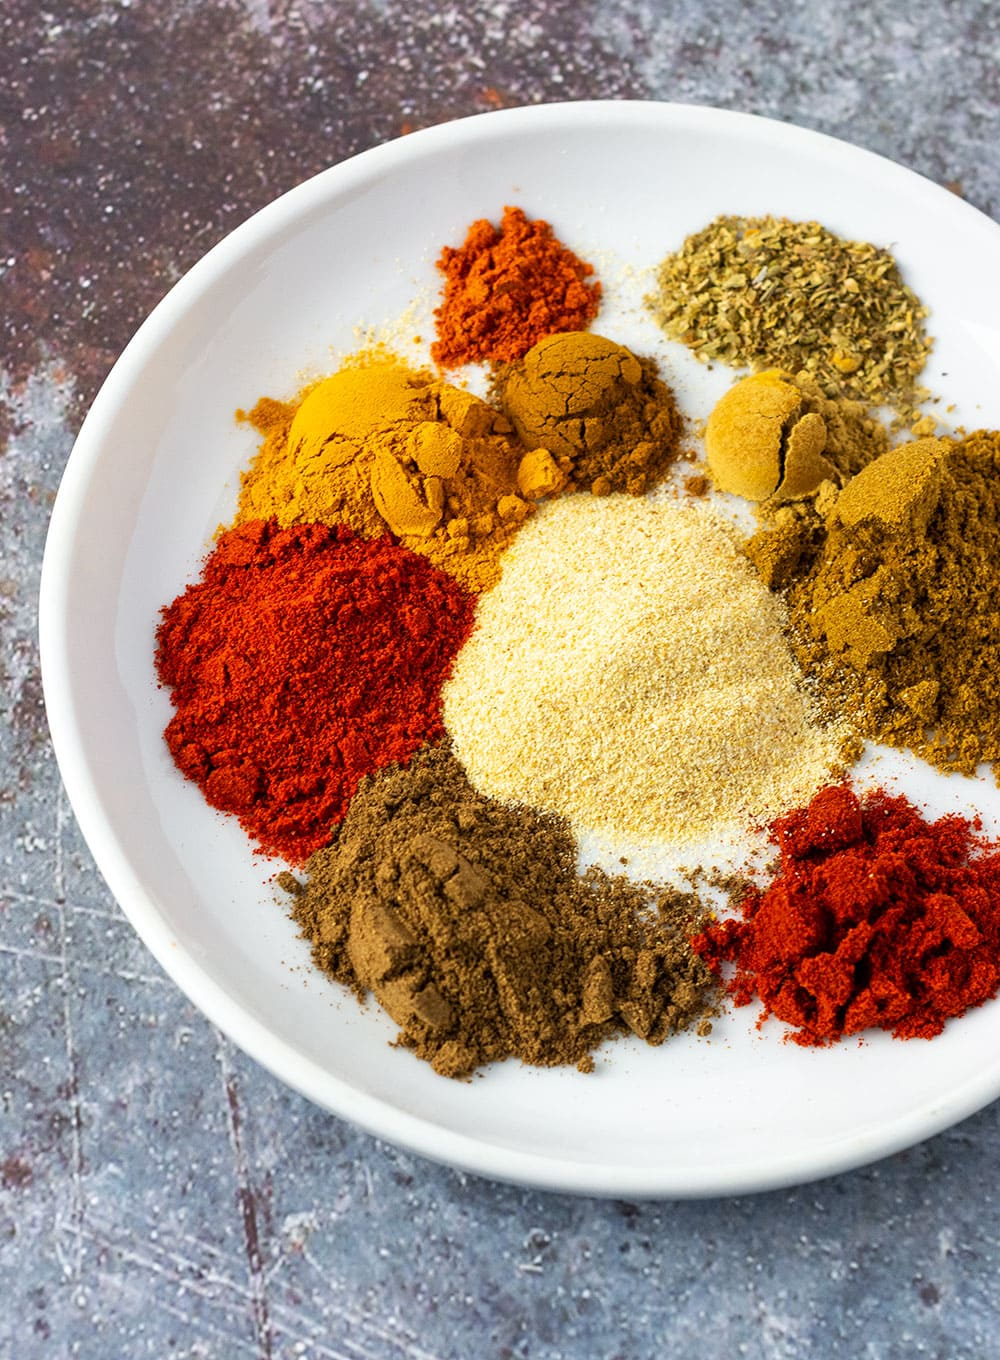 Shawarma seasoning ingredients on a white plate, paprika, cumin, allspice, turmeric, ginger, cayenne pepper, garlic powder.